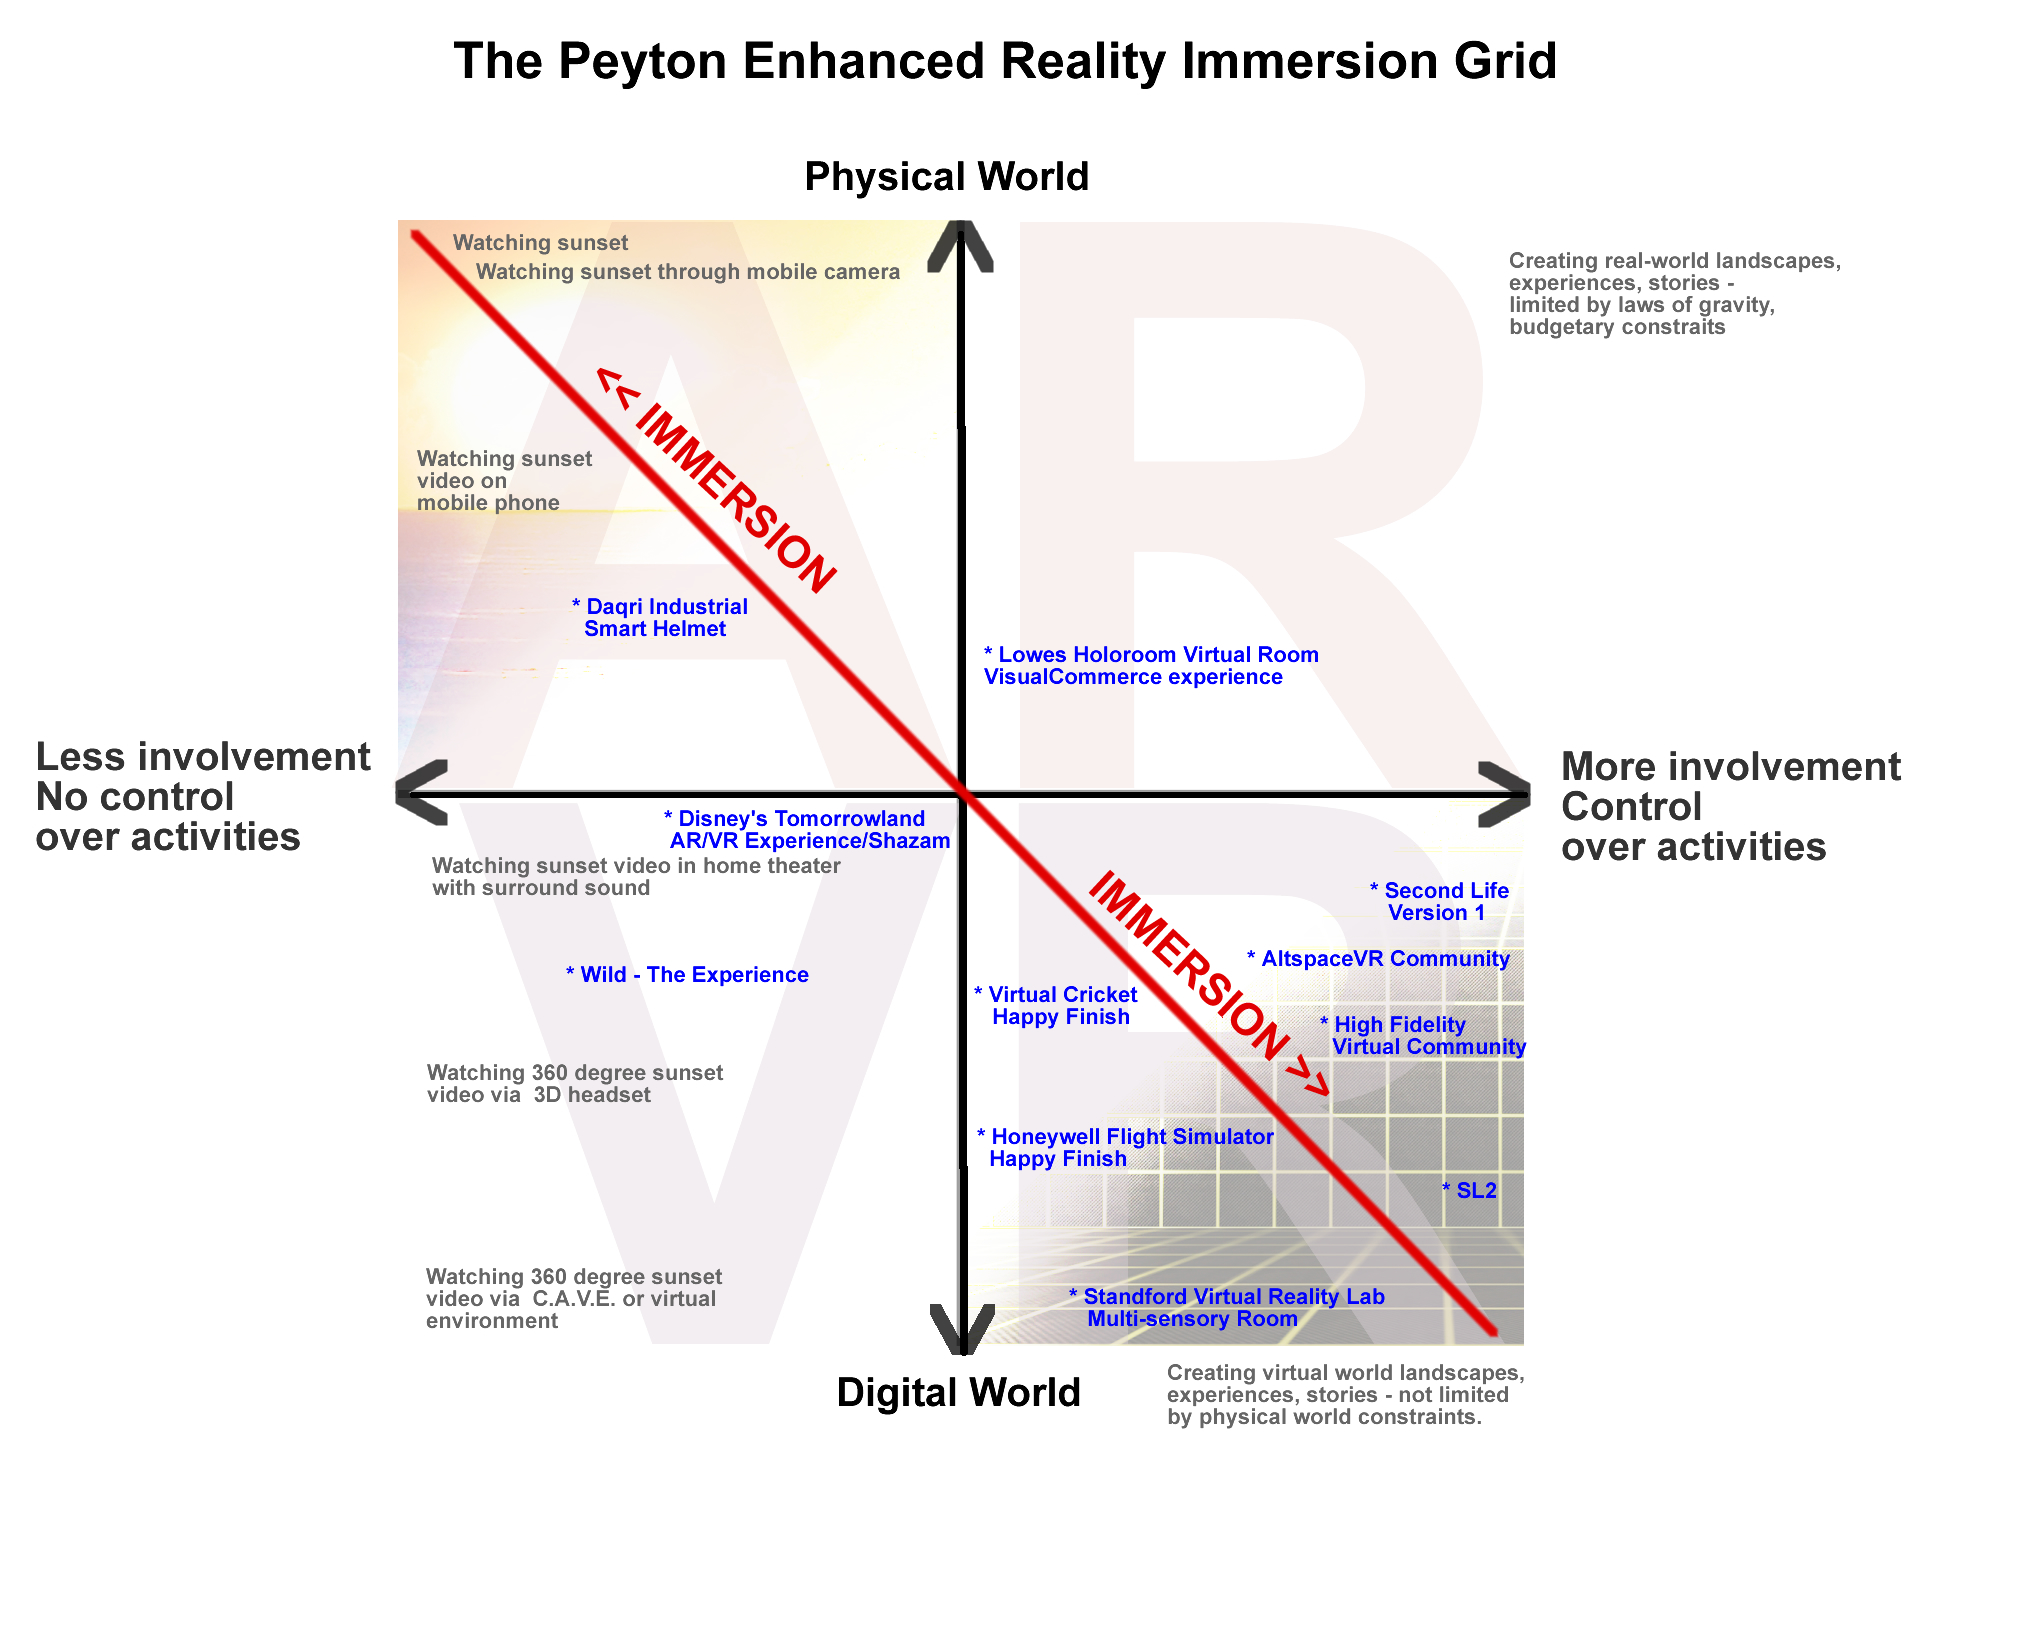 The Peyton Enhanced Reality Immersion Grid